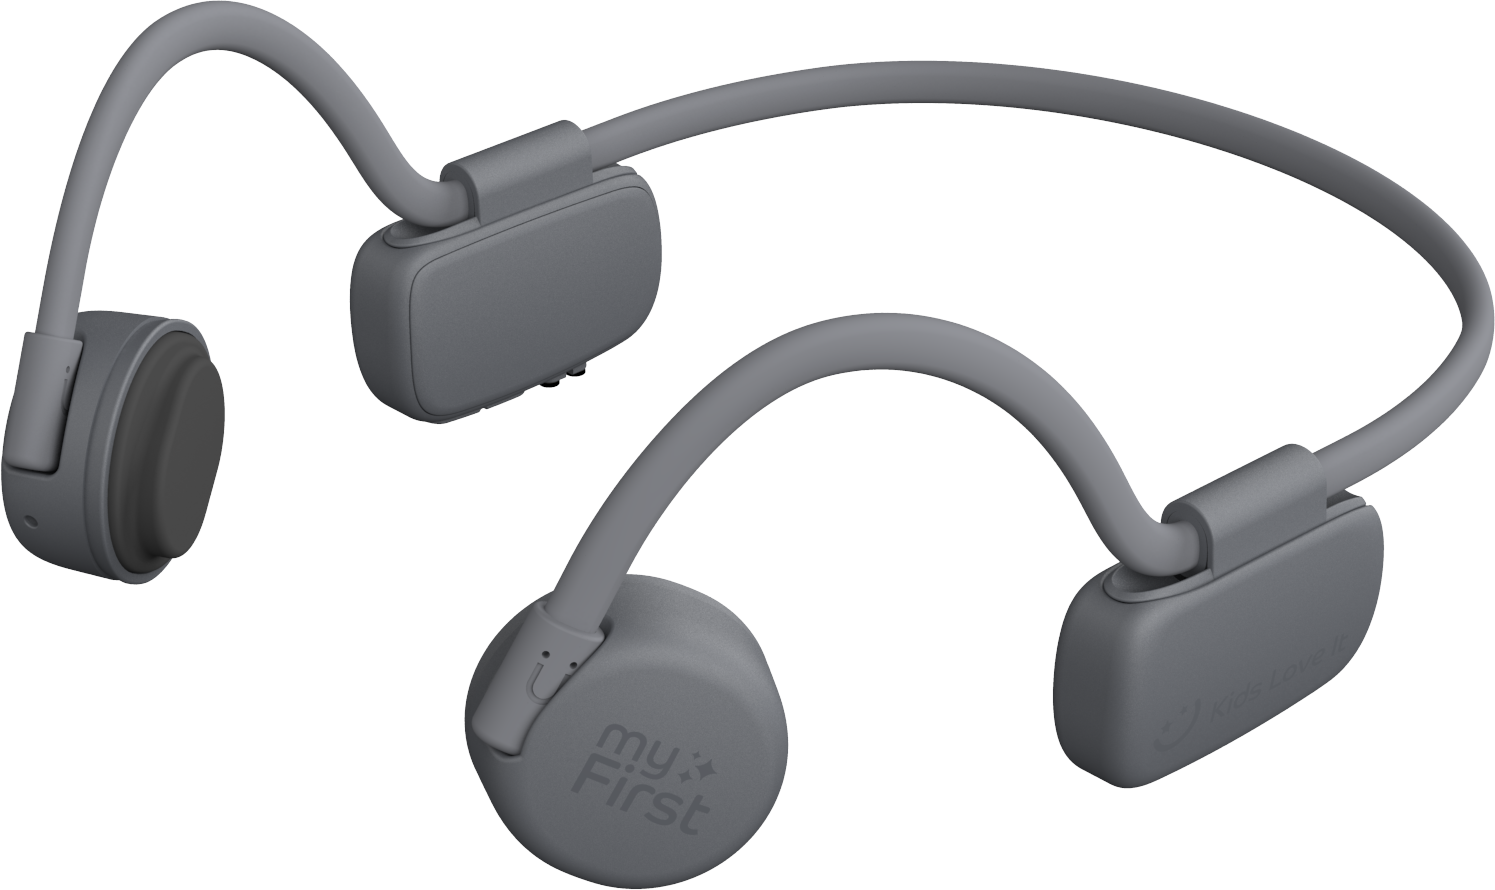 myFirst Headphones BC Wireless @ $110.95. Inclusive of delivery fees! - BYKidO